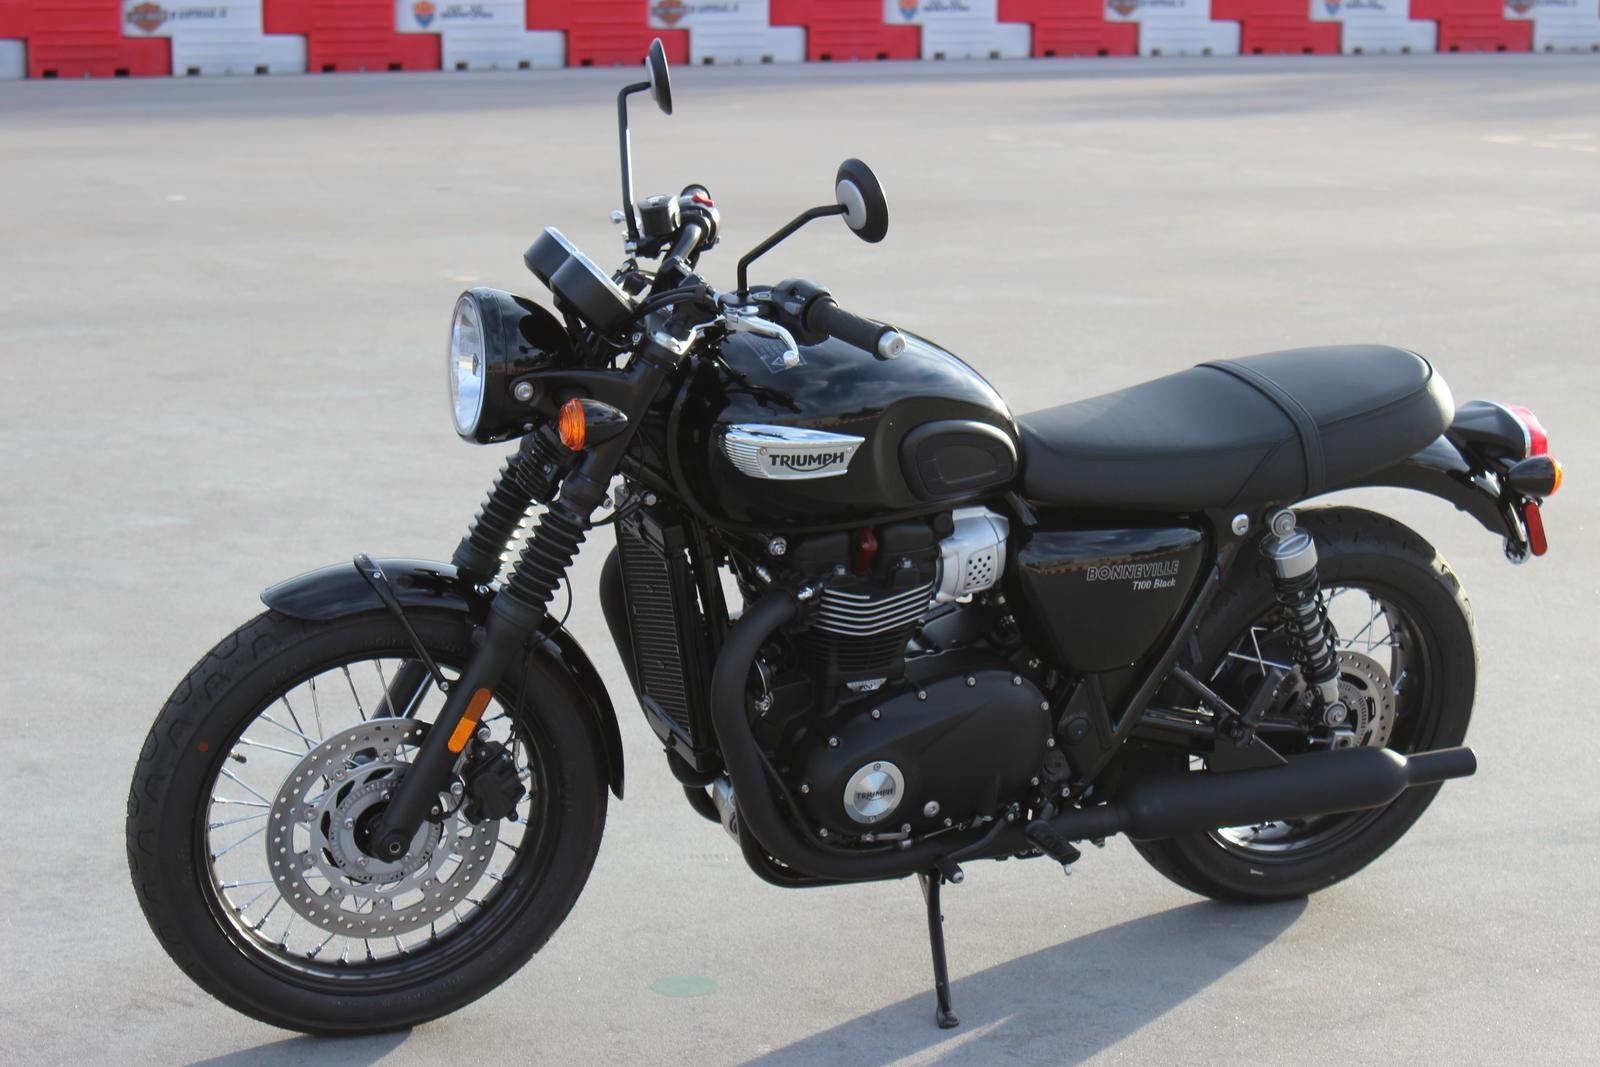 2017 Triumph Bonneville T100 Black For Sale In Scottsdale Az Go Az